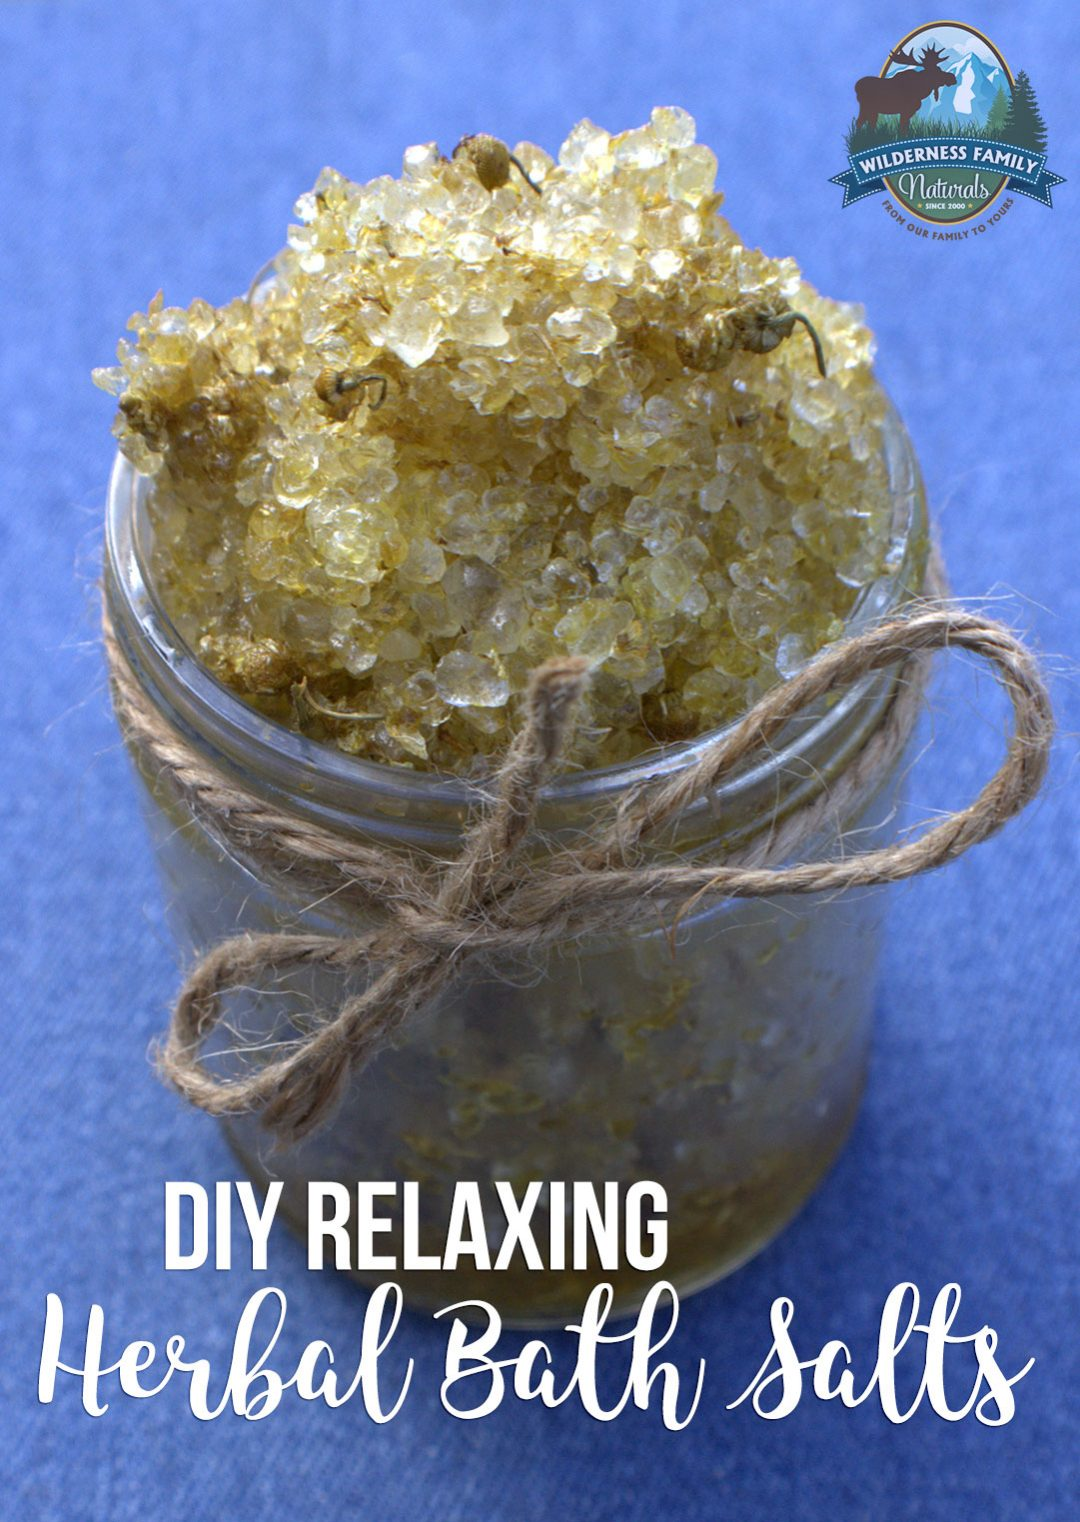 DIY Relaxing Herbal Bath Salts | Adding herbal salts to exfoliate and soothe your skin makes a hot bath even better. And we all have that someone on our list who's hard to buy for... so give them the gift of natural relaxation this year with some DIY bath salts! | WildernessFamilyNaturals.com